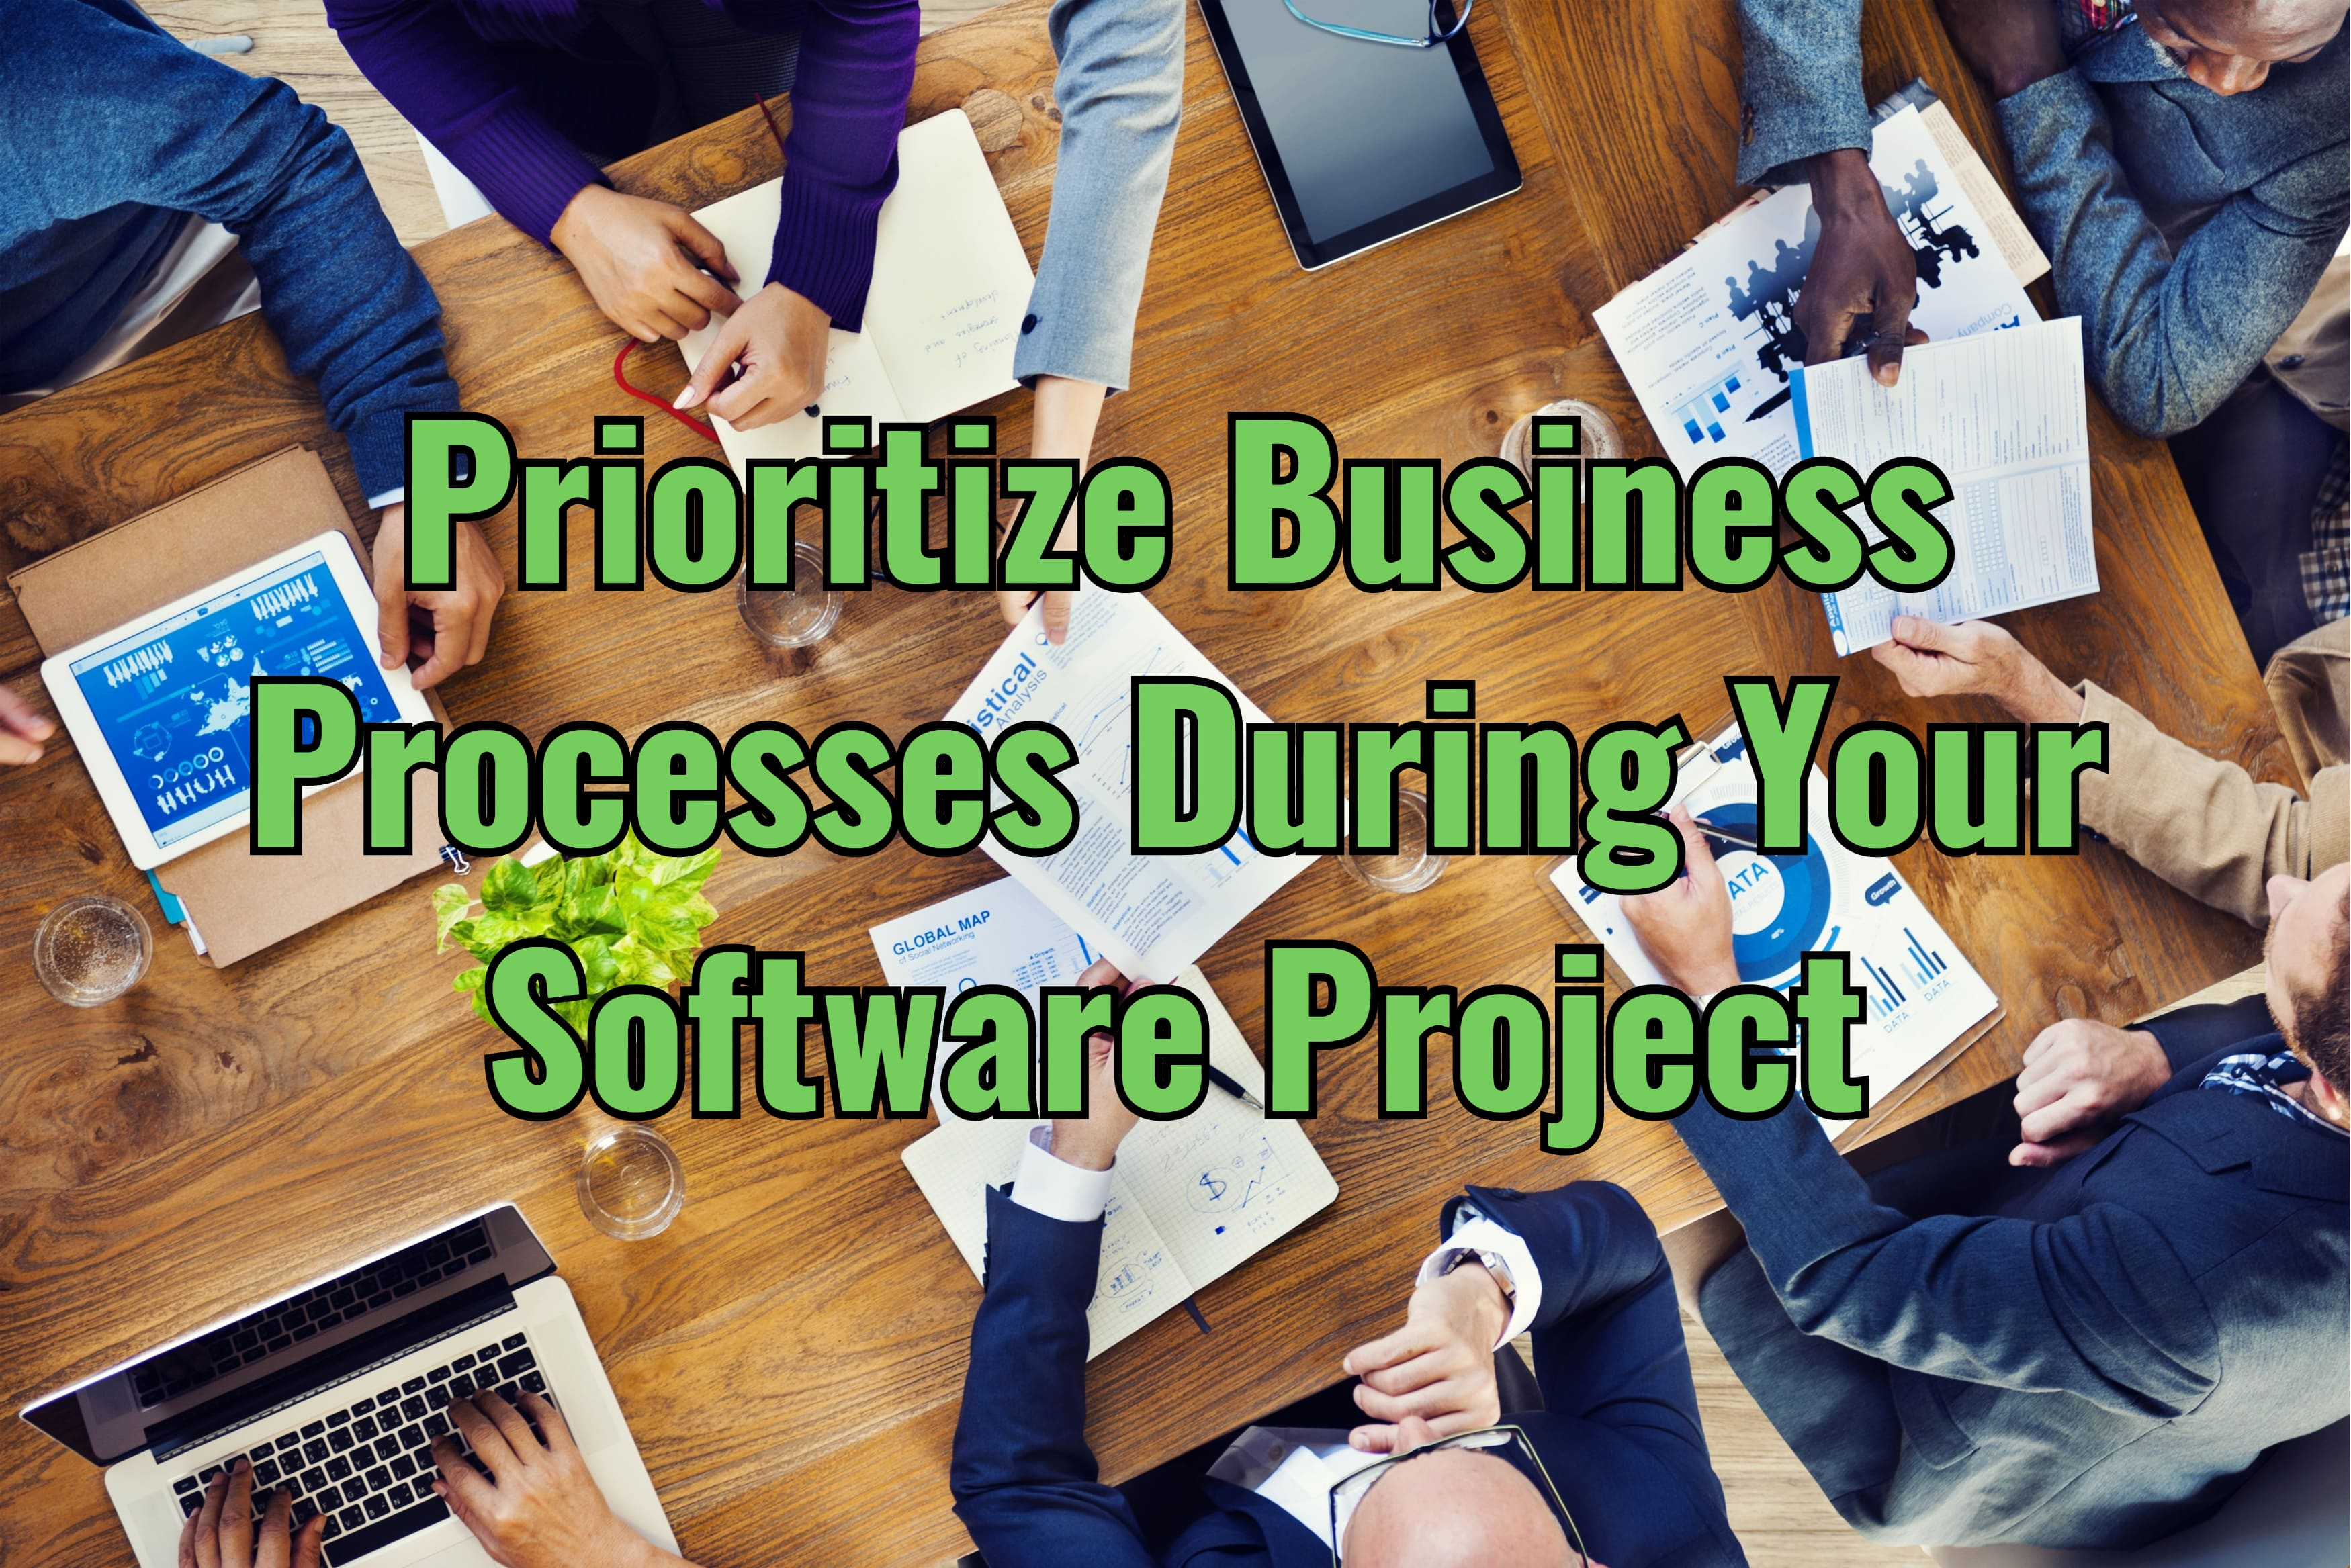 Prioritize Business Processes During Your Software Project